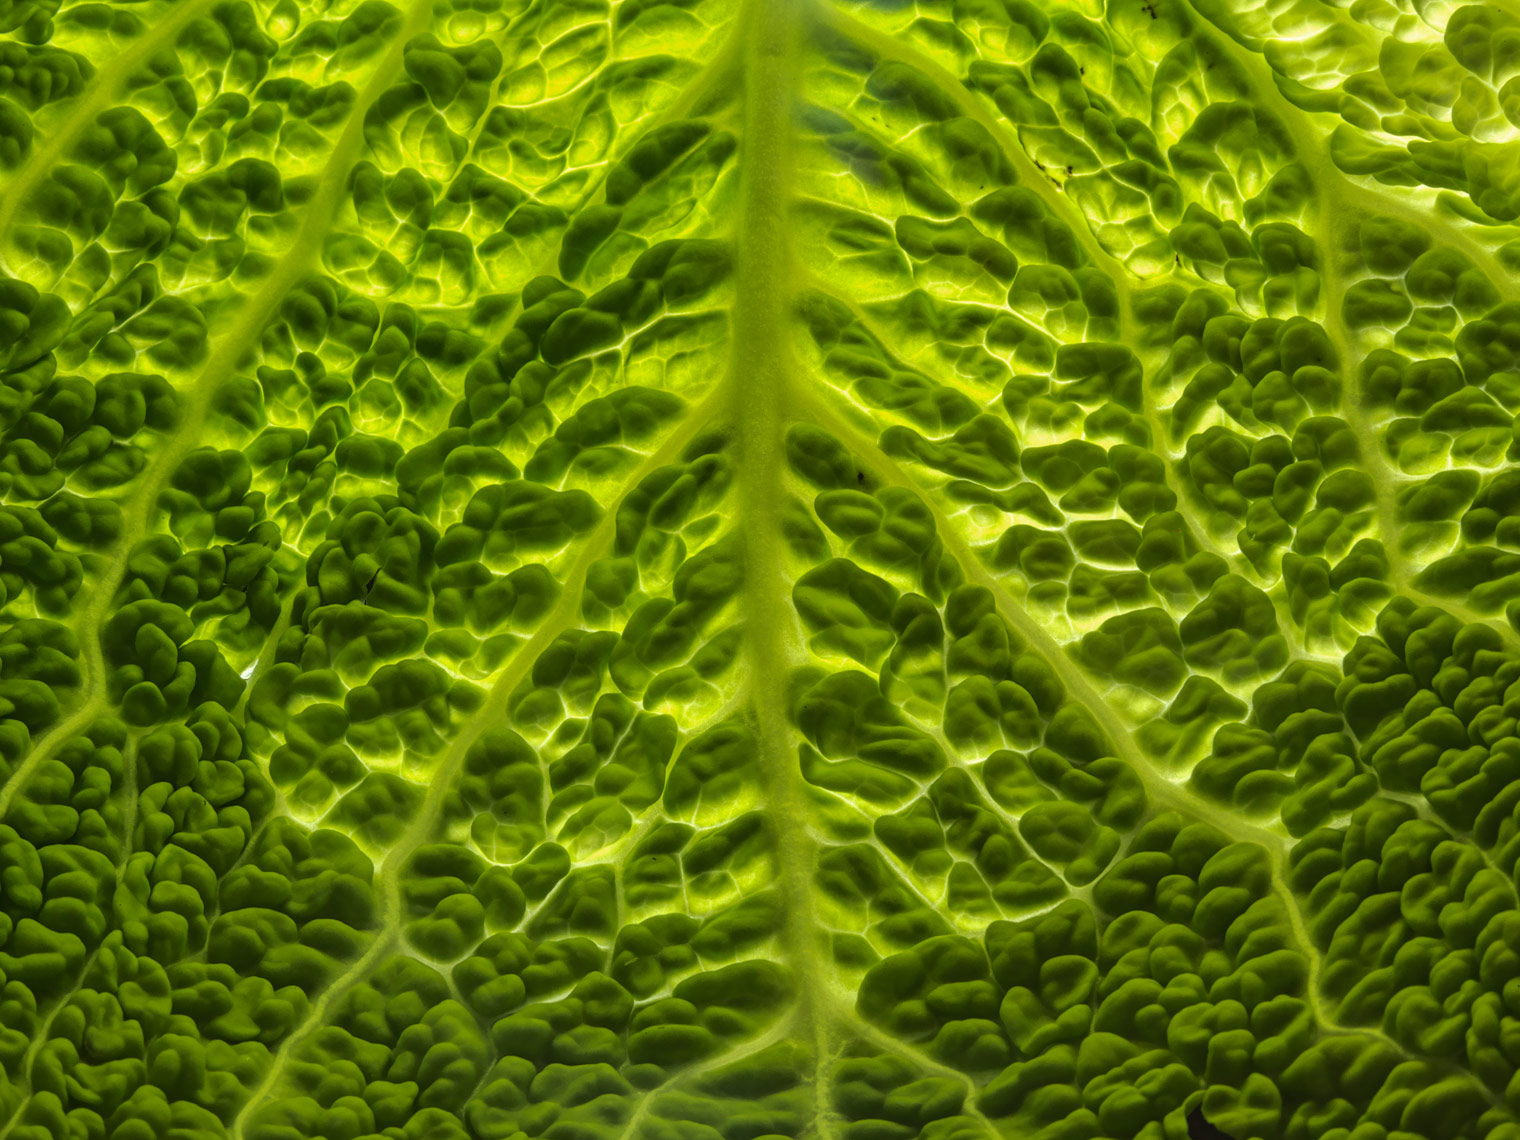 backlit leaf of green cabbage